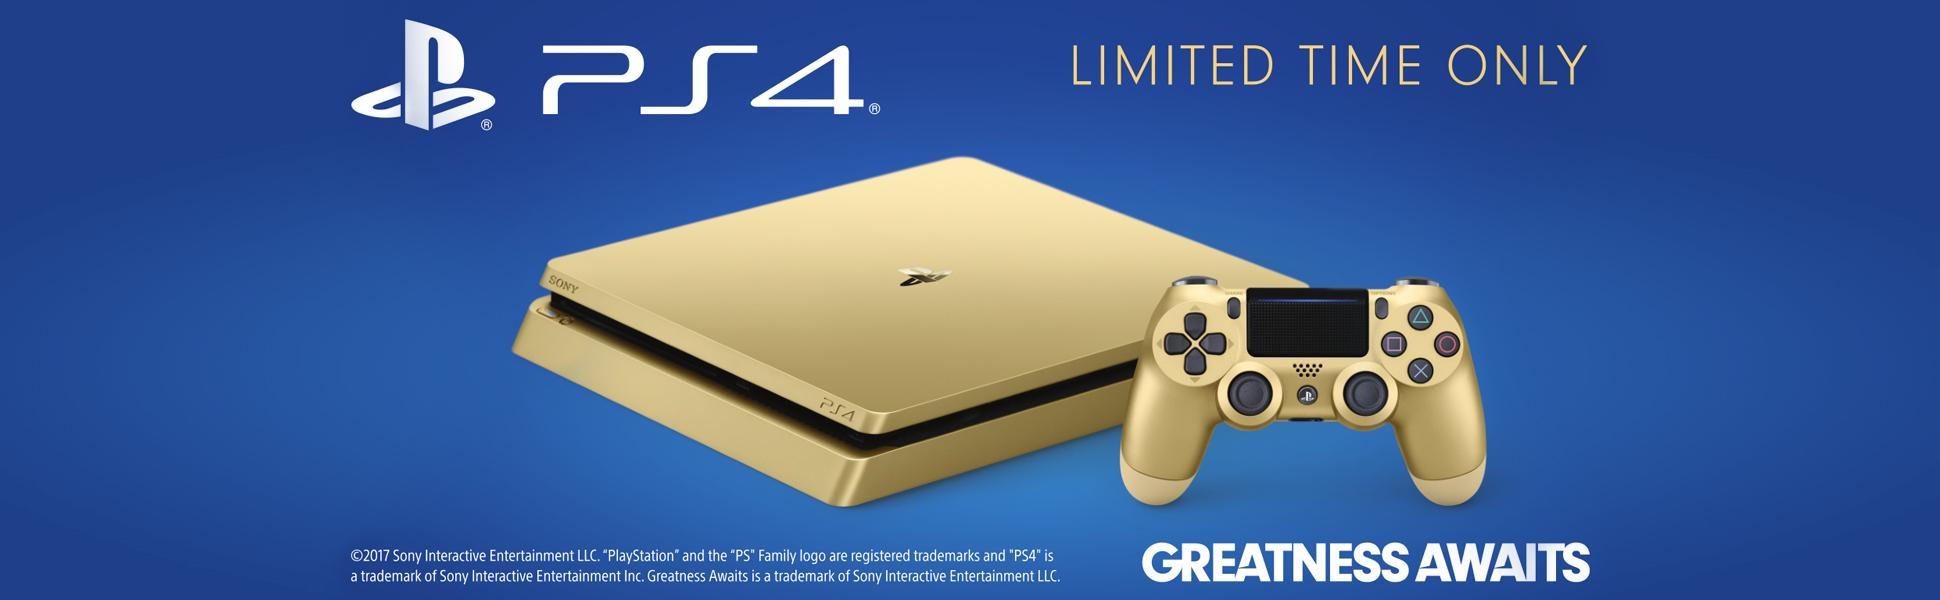 Playstation 4 Slim 1tb Gold Console Discontinued Sony 1 Tb Cuh 2016b From The Manufacturer